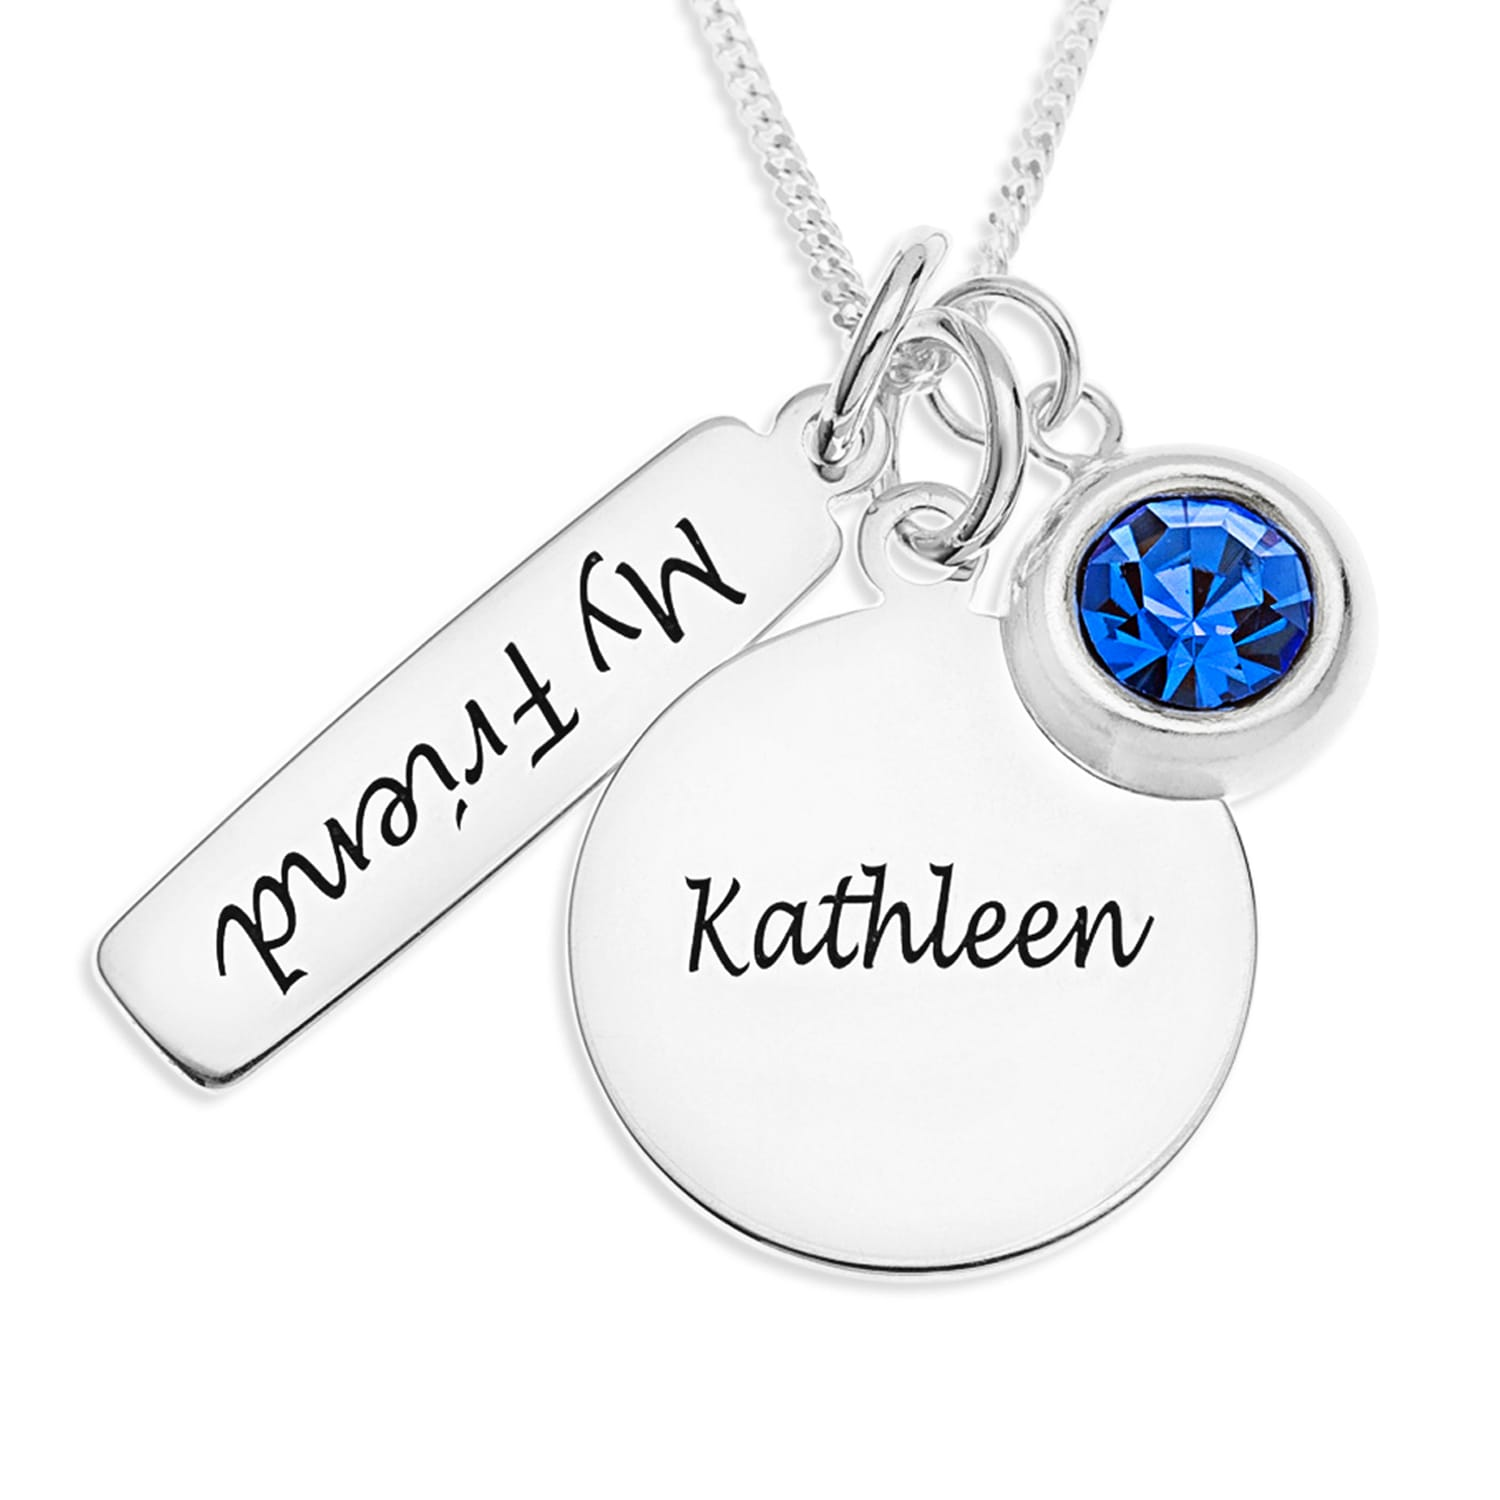 Personalised Gifts Sterling Silver Friendship Pendant with Birthstone